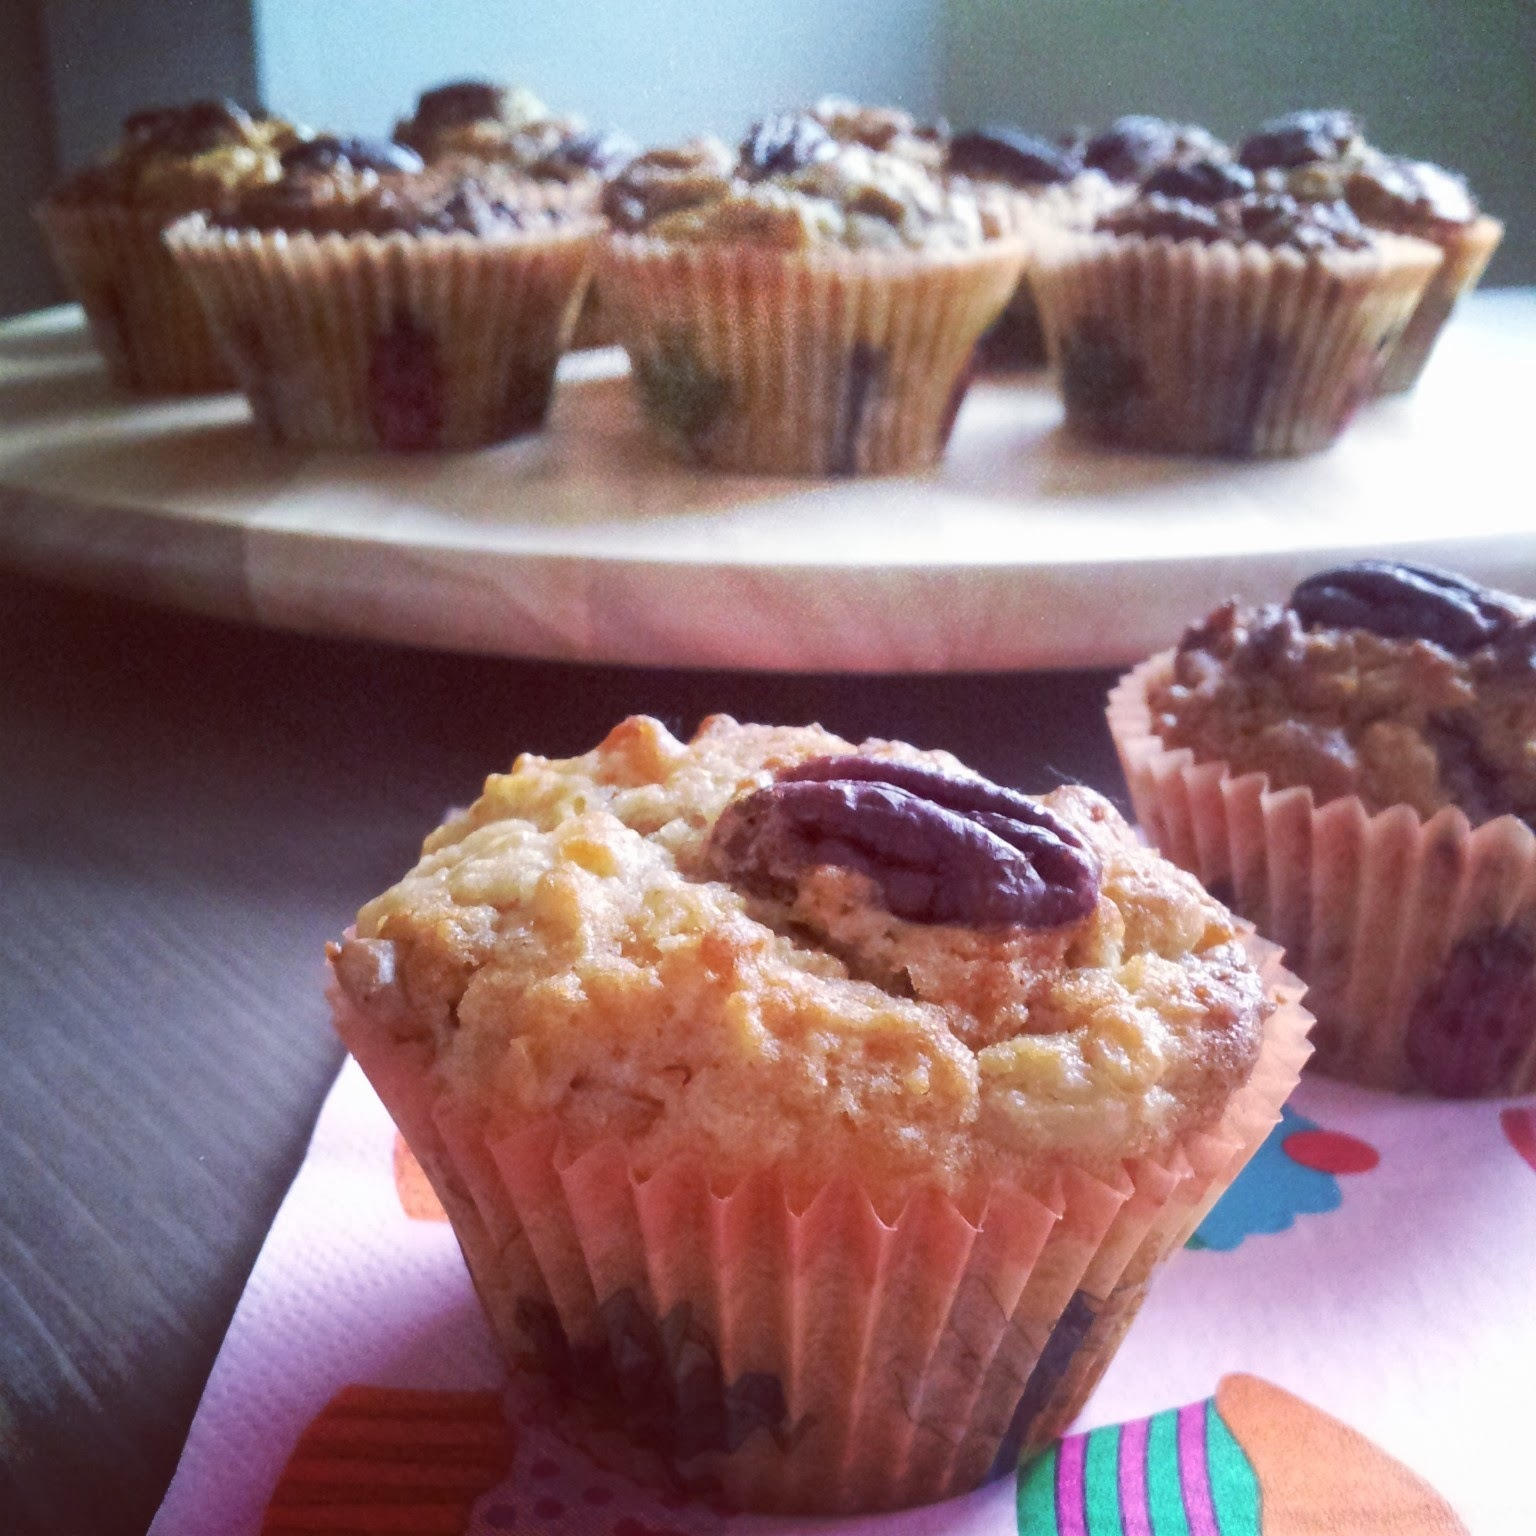 Tvarohové muffiny s ořechy / Muffins from quark with nuts